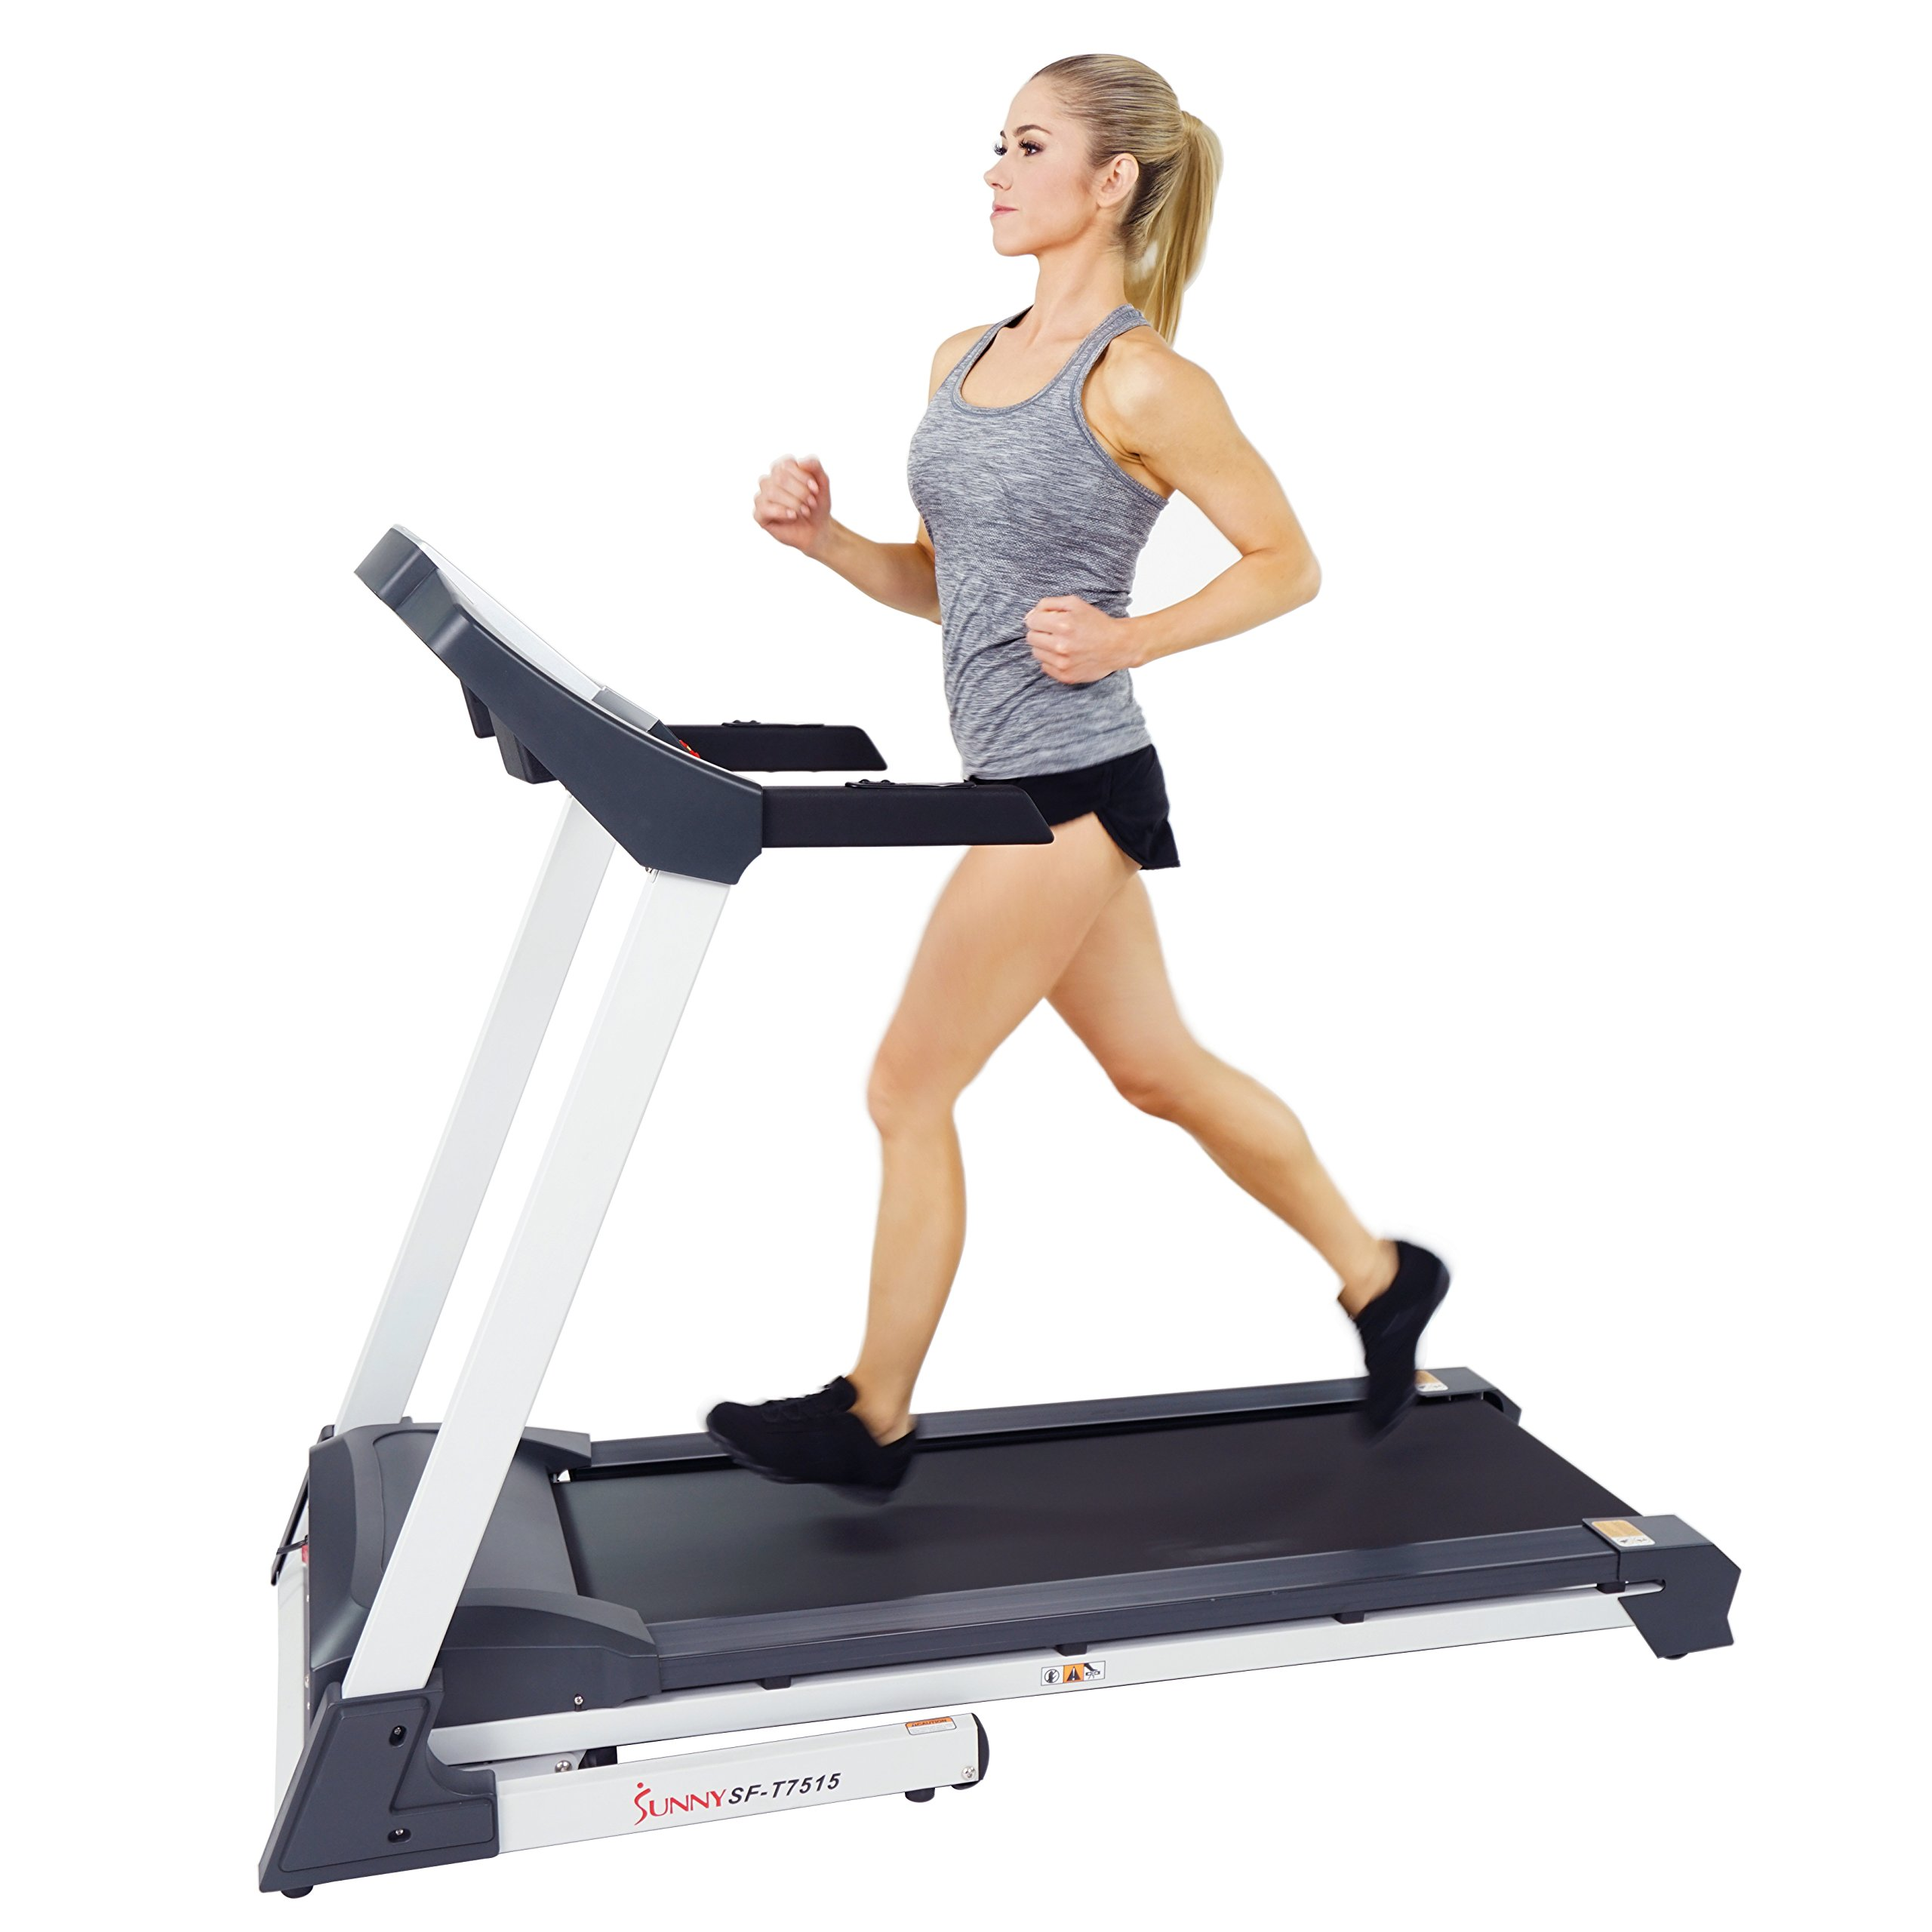 Sunny Health & Fitness SF-T7515 Smart Treadmill with Auto Incline, Bluetooth and BMI Calculator by Sunny Health & Fitness